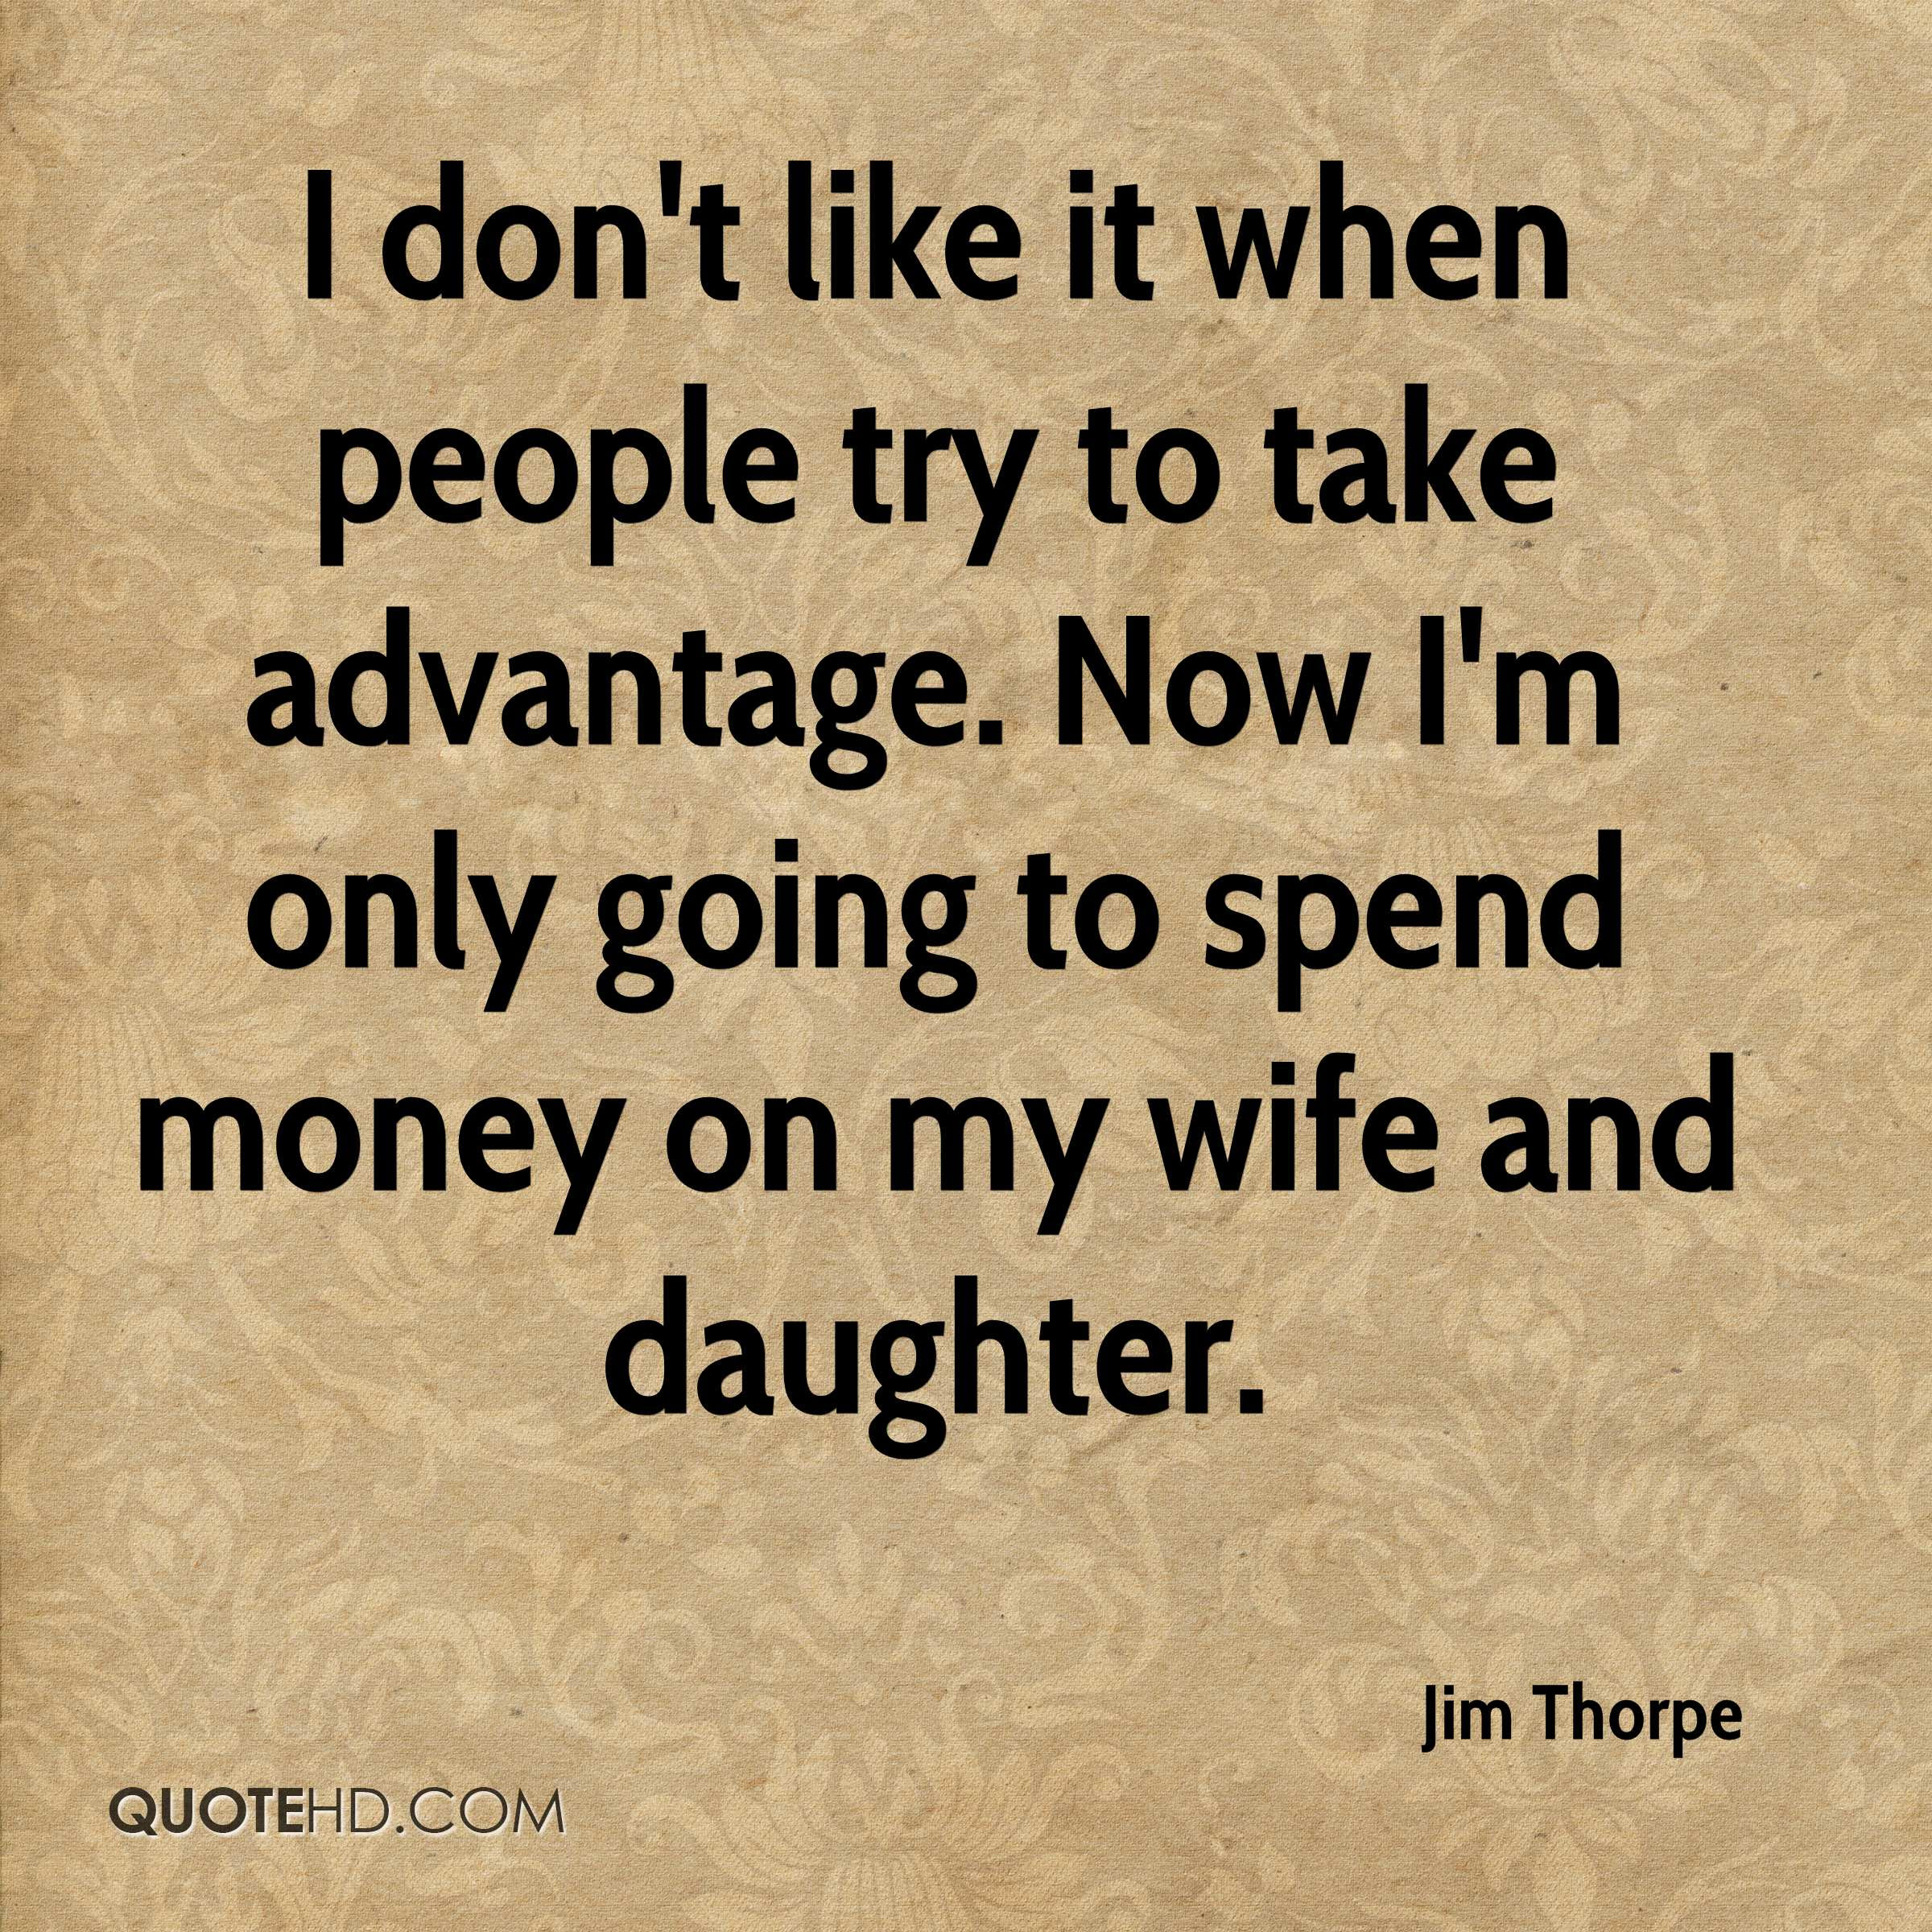 Jim Thorpe Wife Quotes Quotehd